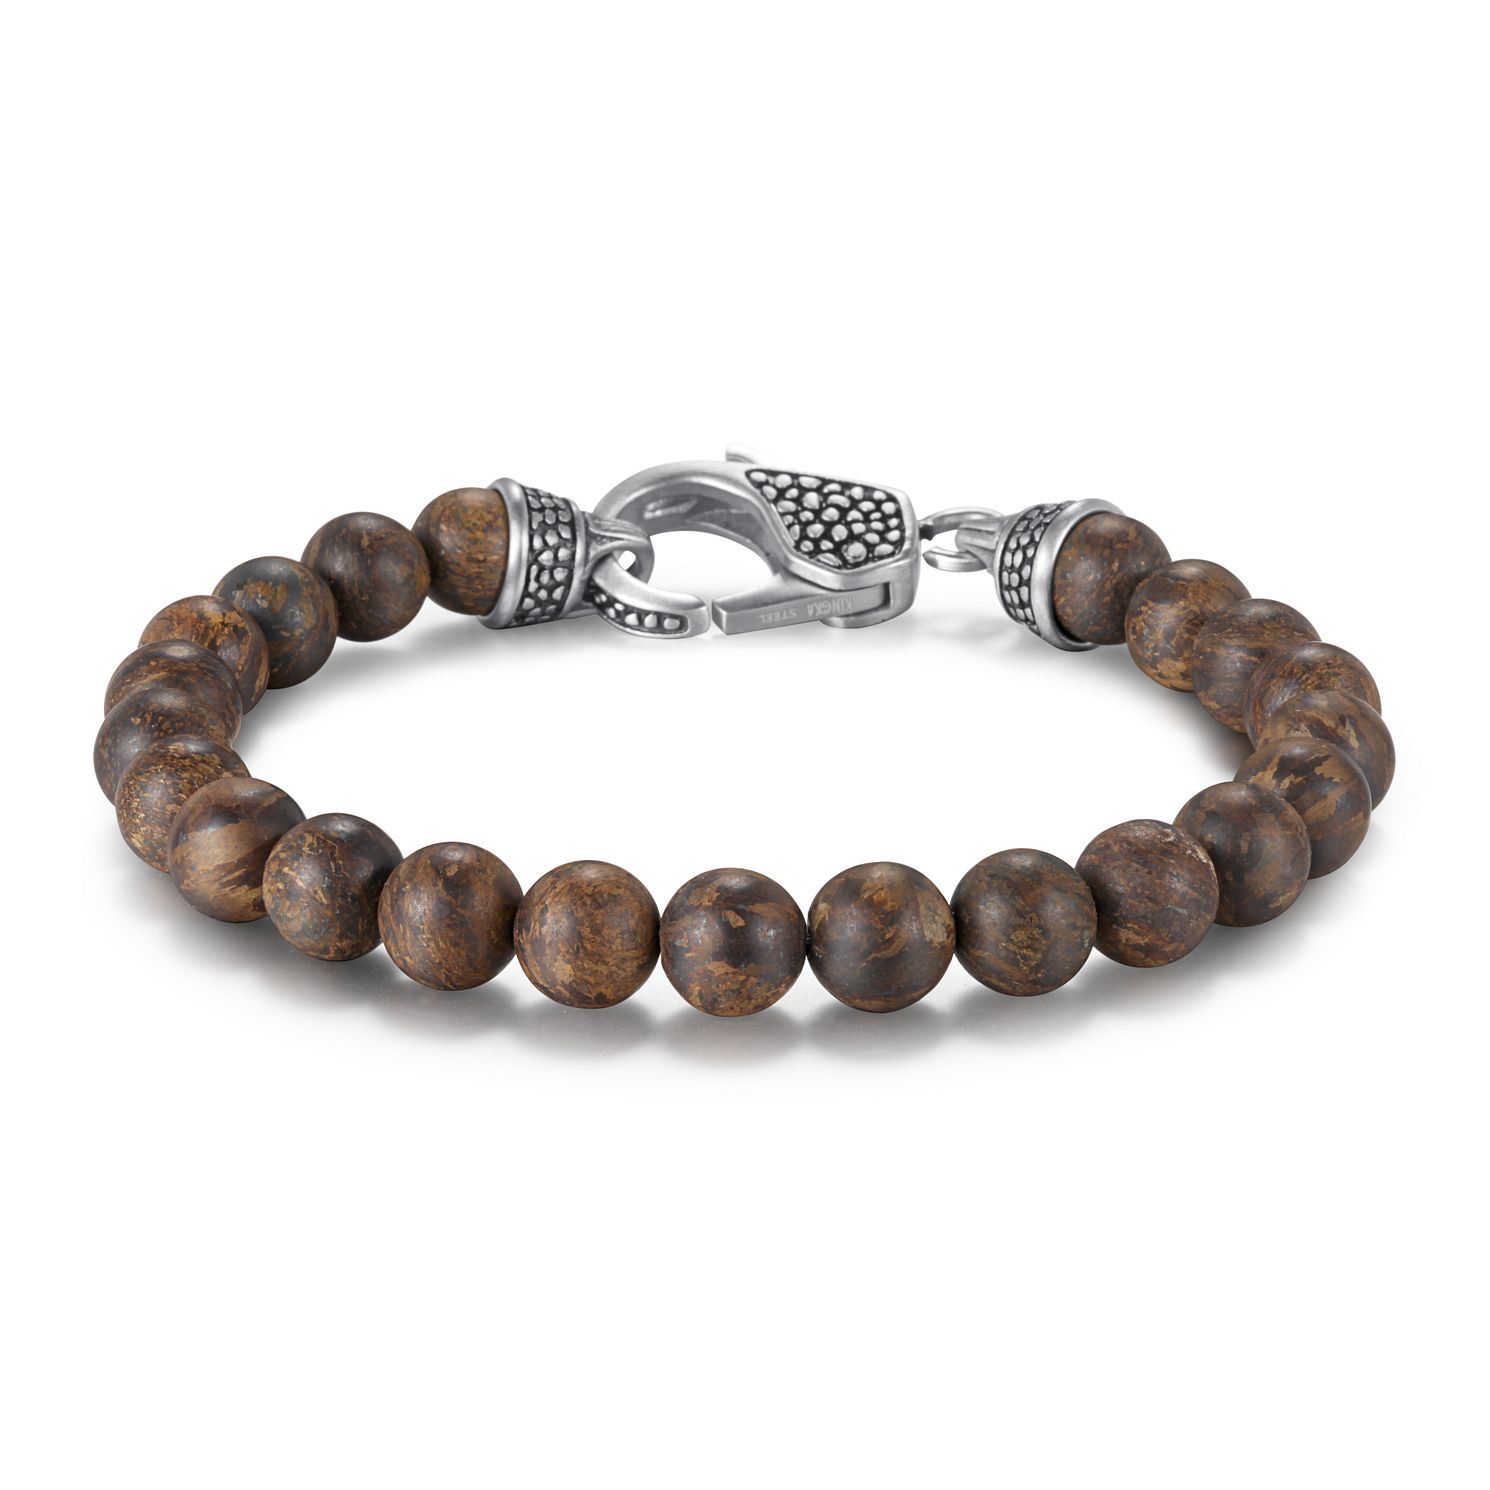 Kingka Matte Bronzite & Stainless Steel Bead Bracelet - Product number 5125944